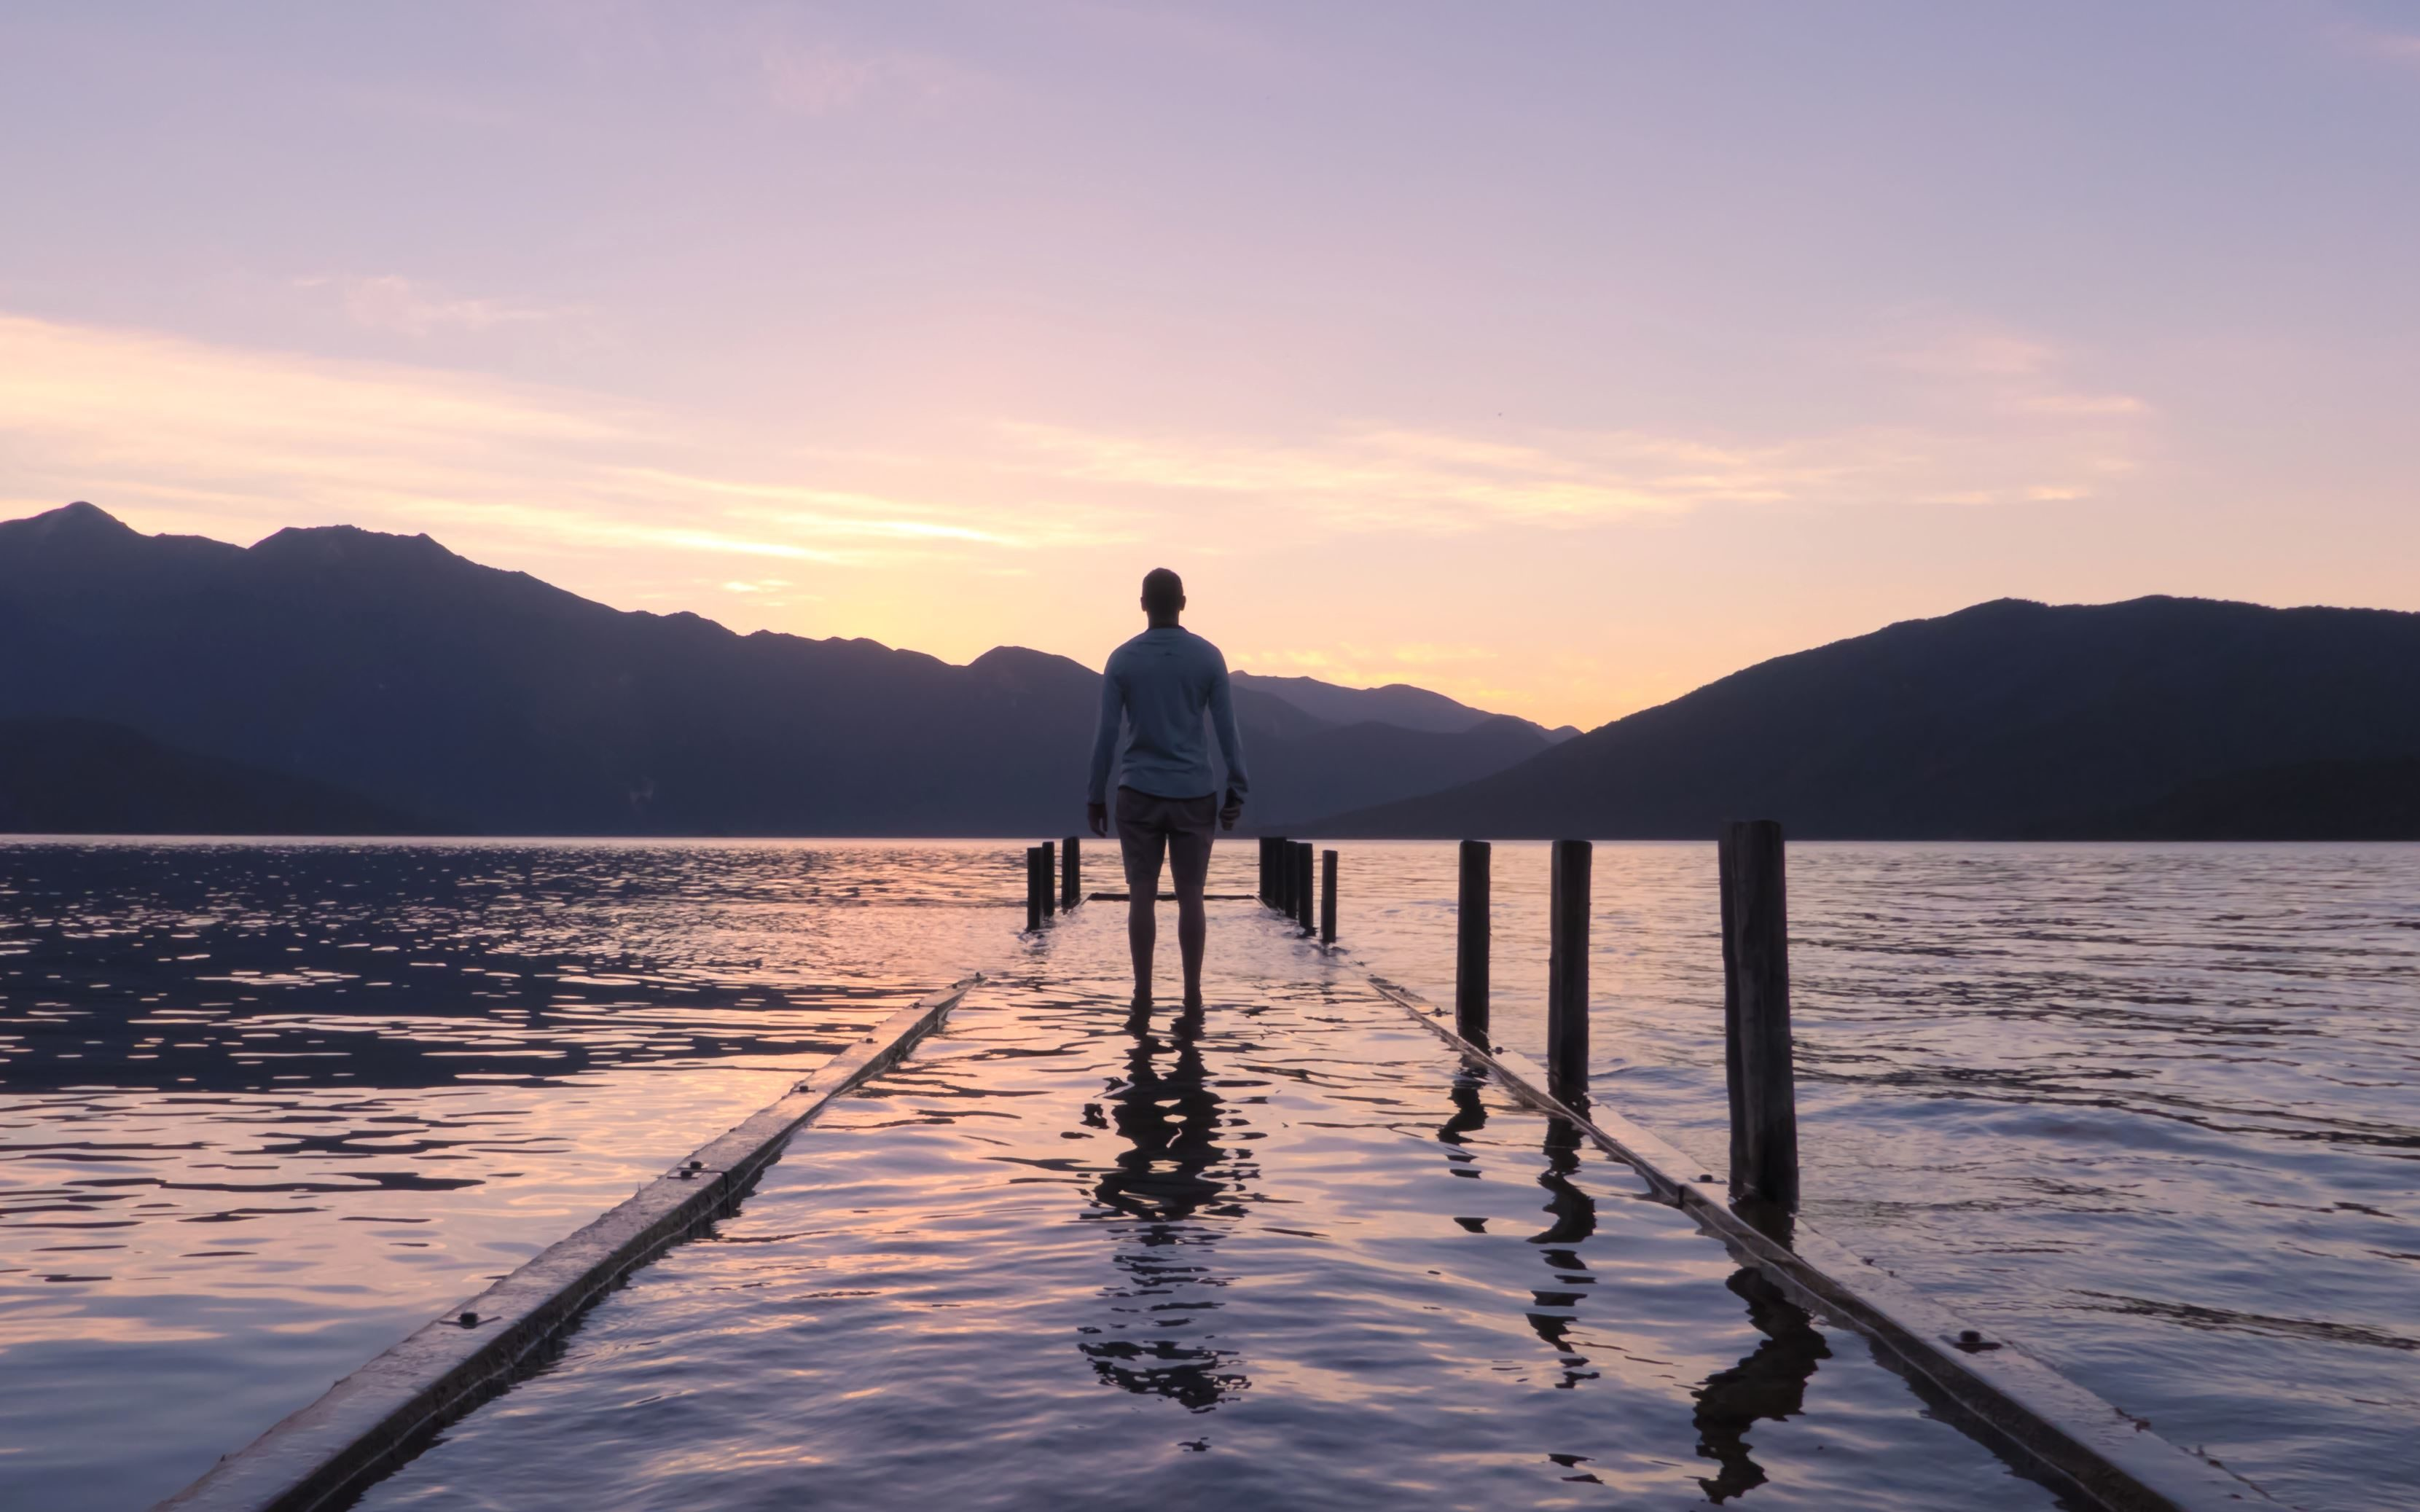 Free picture: person, dock, nature, sky, walkway, beach, dusk ...